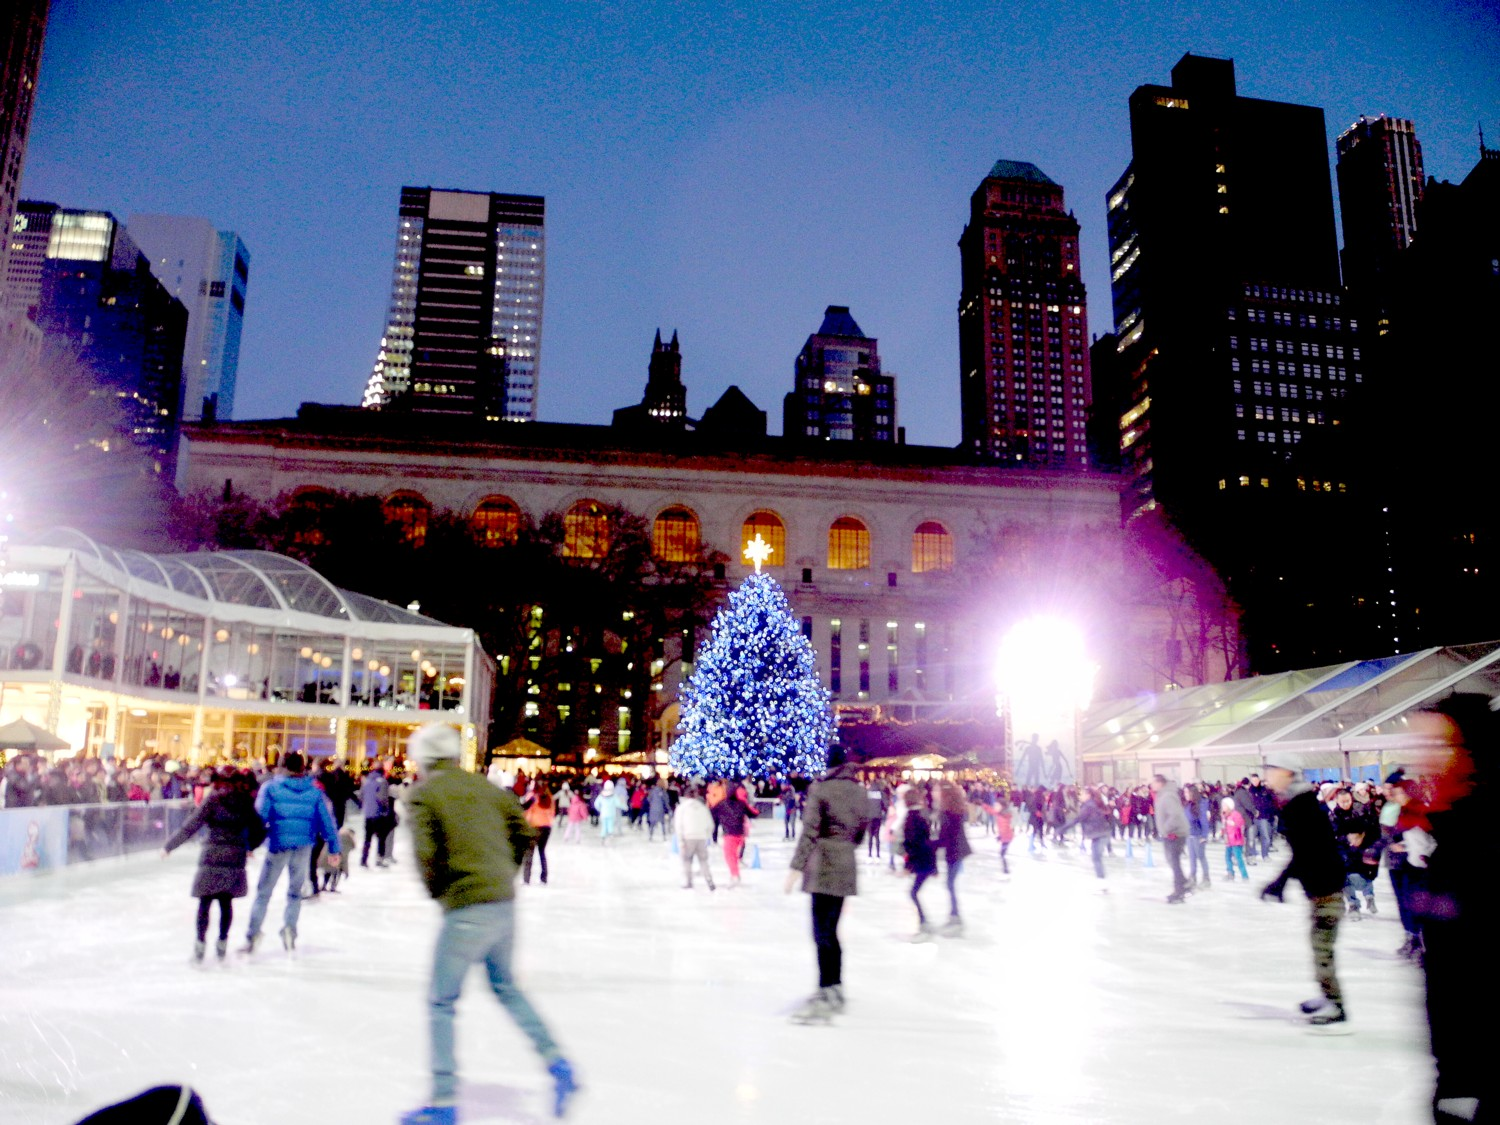 Bryant Park with its Christmas tree, skating rink, holiday market and cafes has become a warm and wonderful holiday venue © 2016 Karen Rubin/goingplacesfarandnear.com